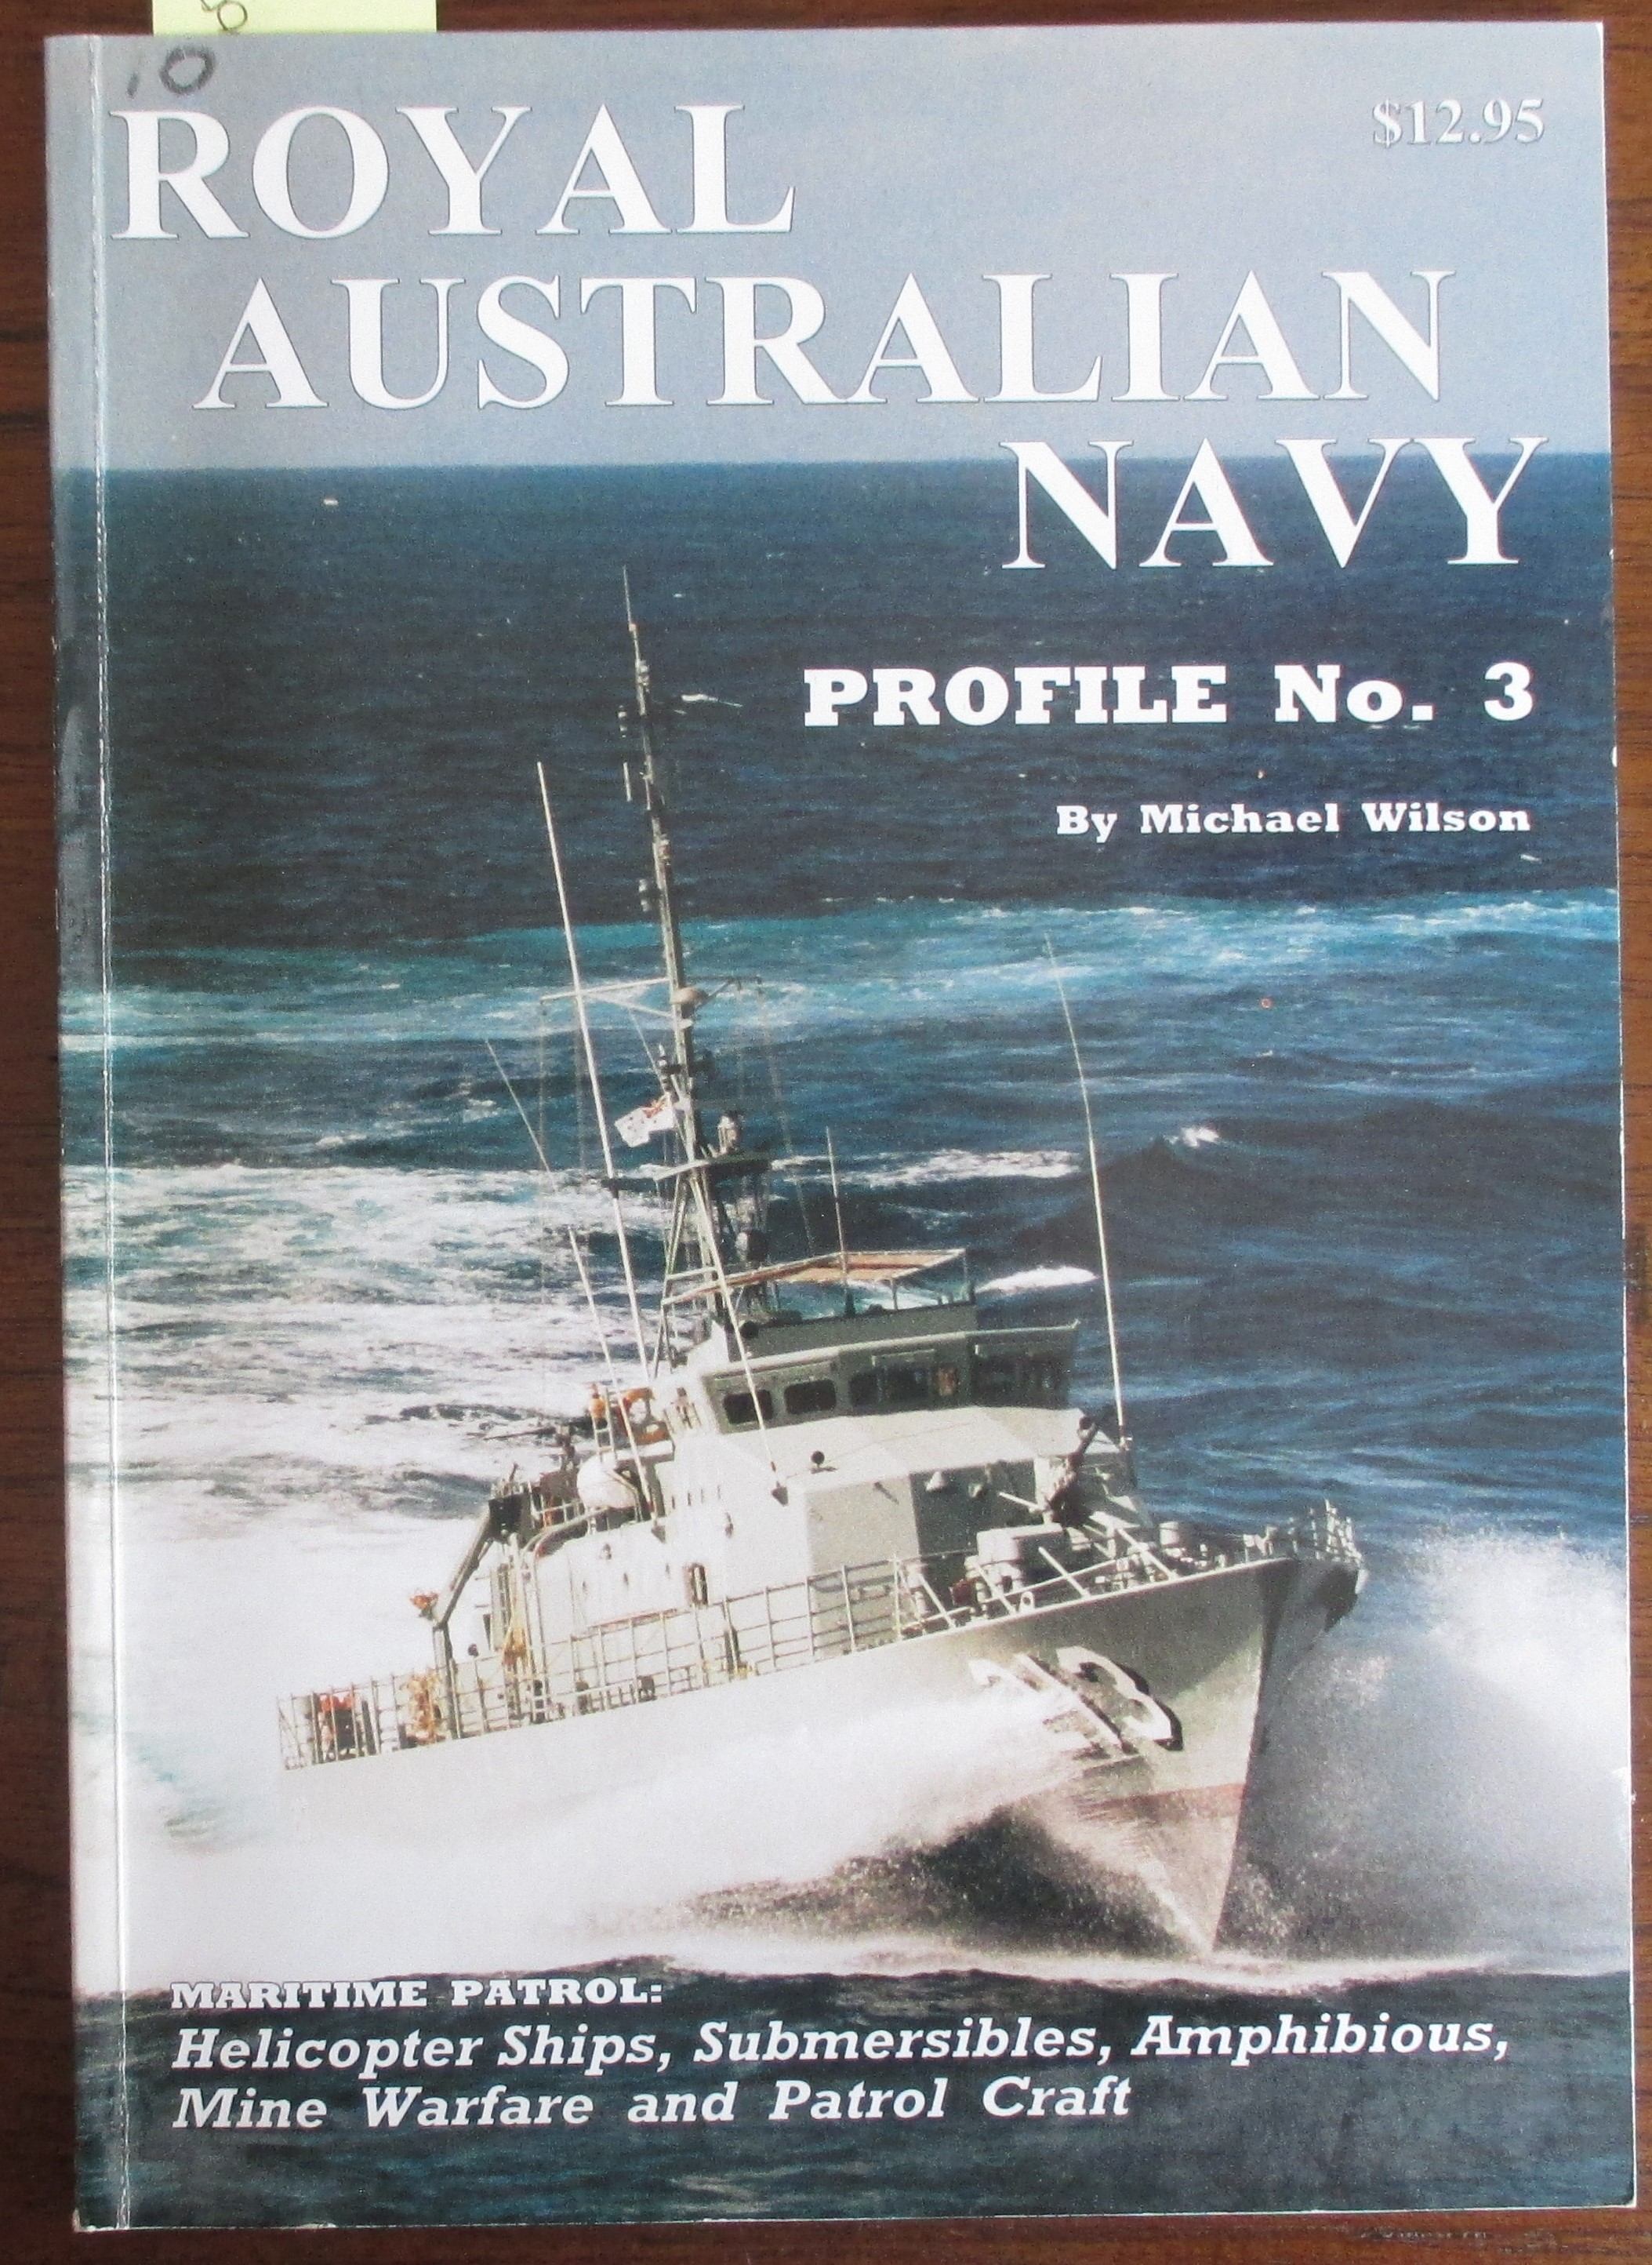 Image for Royal Australian Navy: Maritime Patrol - Helicopter Ships, Submersibles, Amphibious, Mine Warfare and Patrol Craft (Profile No. 3)